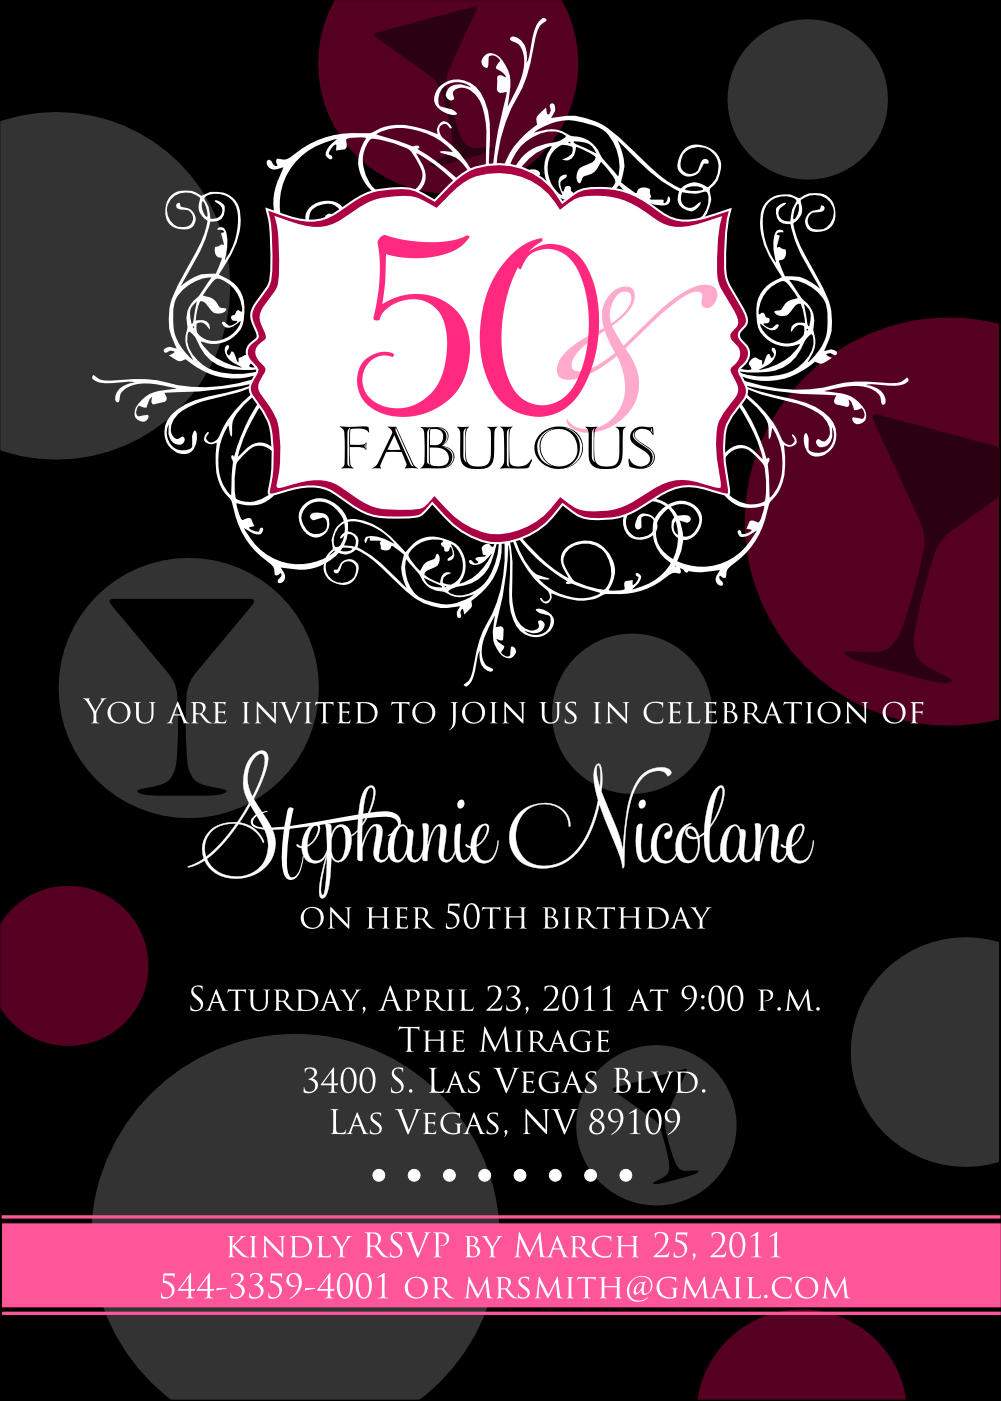 50th Birthday Beach Party Invitations – Party Invitations 50th Birthday